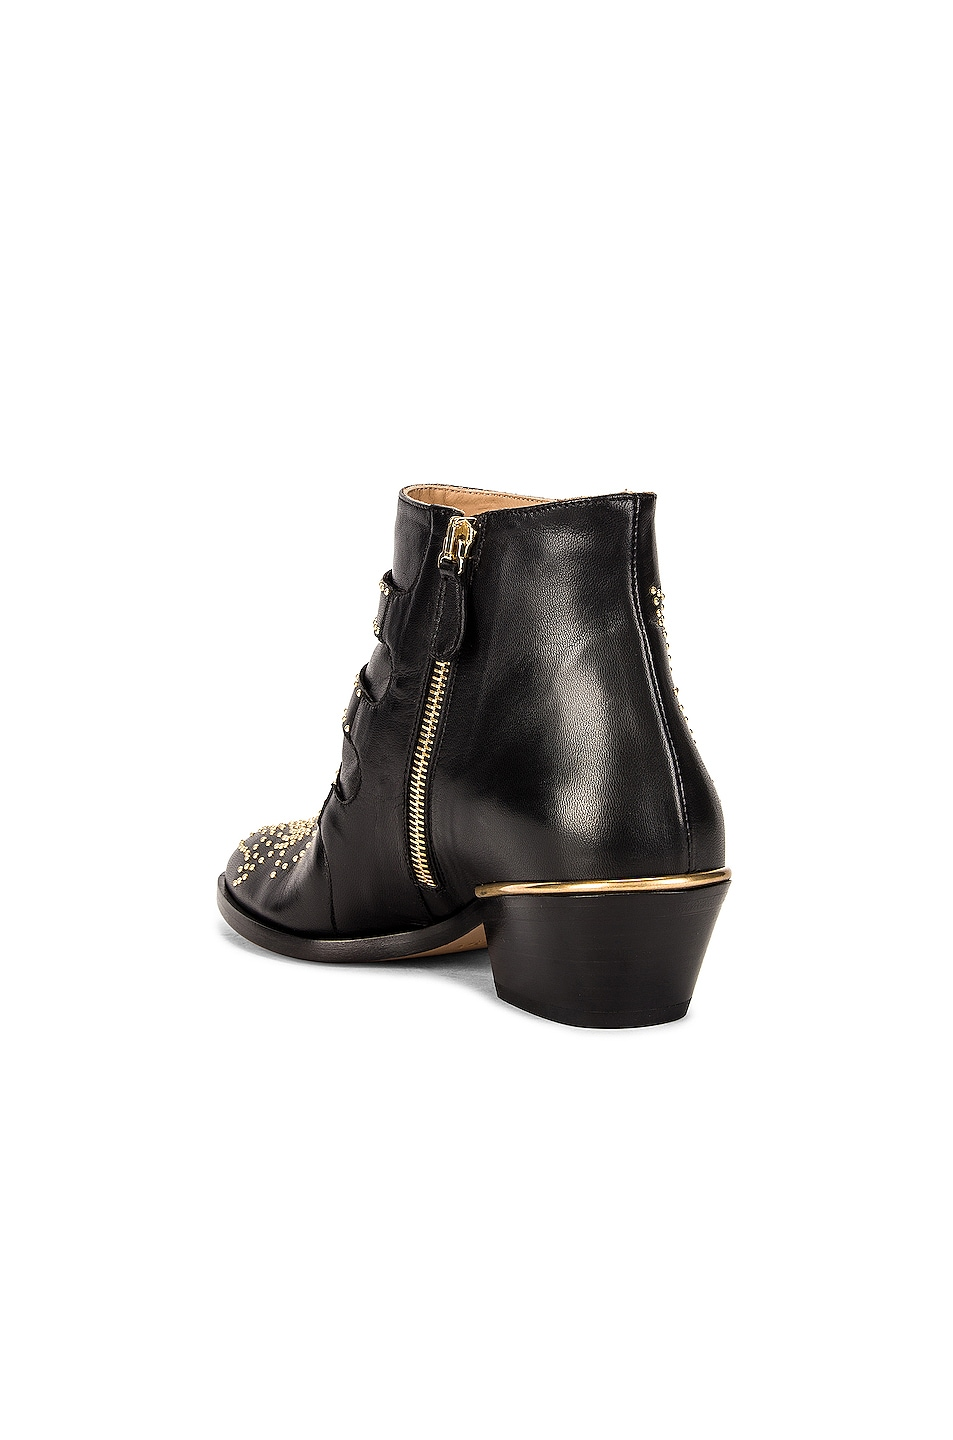 Image 3 of Chloe Susanna Leather Studded Booties in Black & Gold